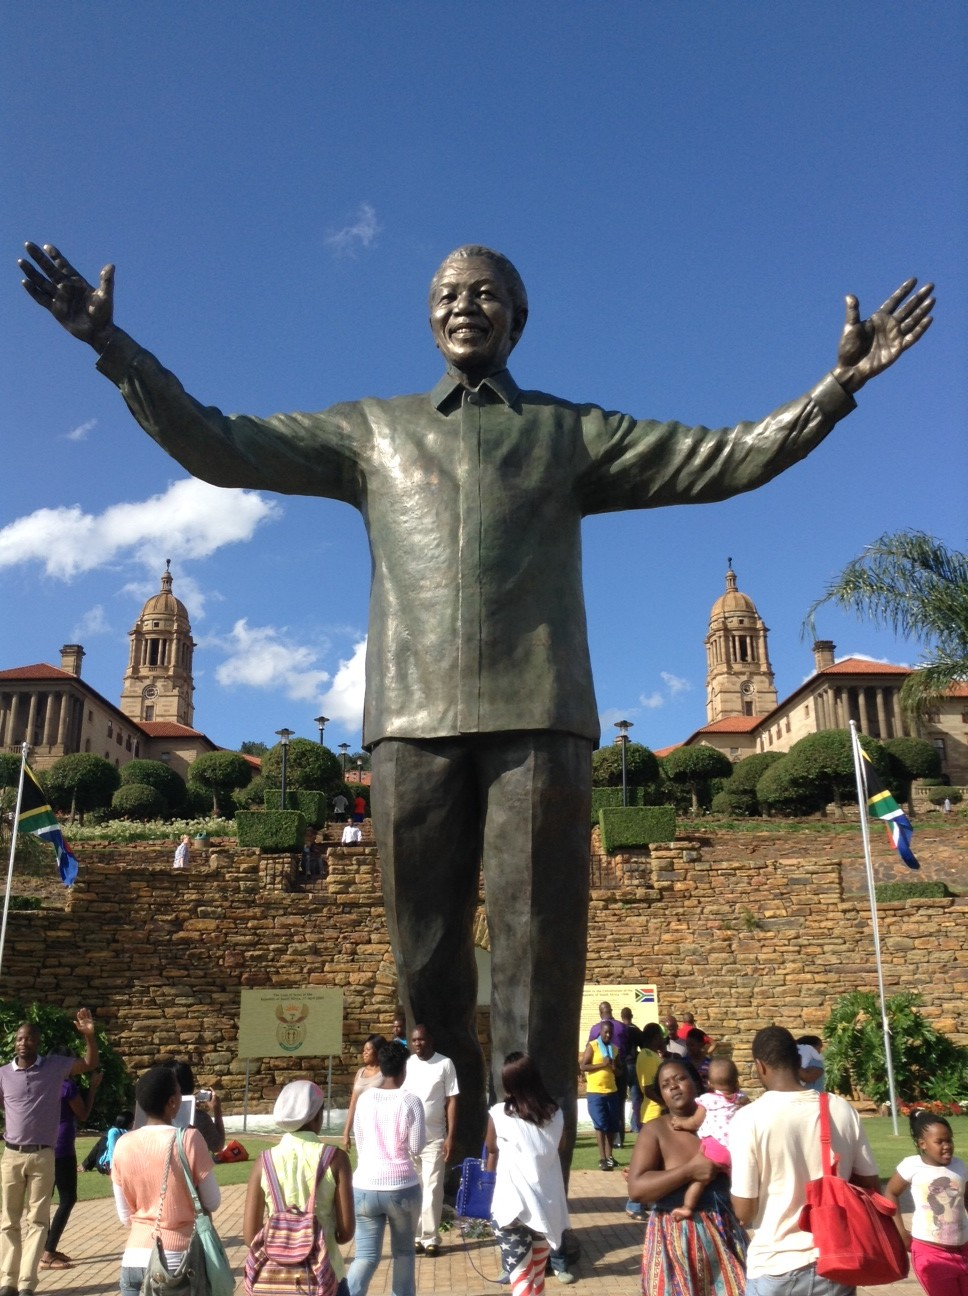 Mandela's 24-foot statue in Pretoria (NNPA Photo by George E. Curry)